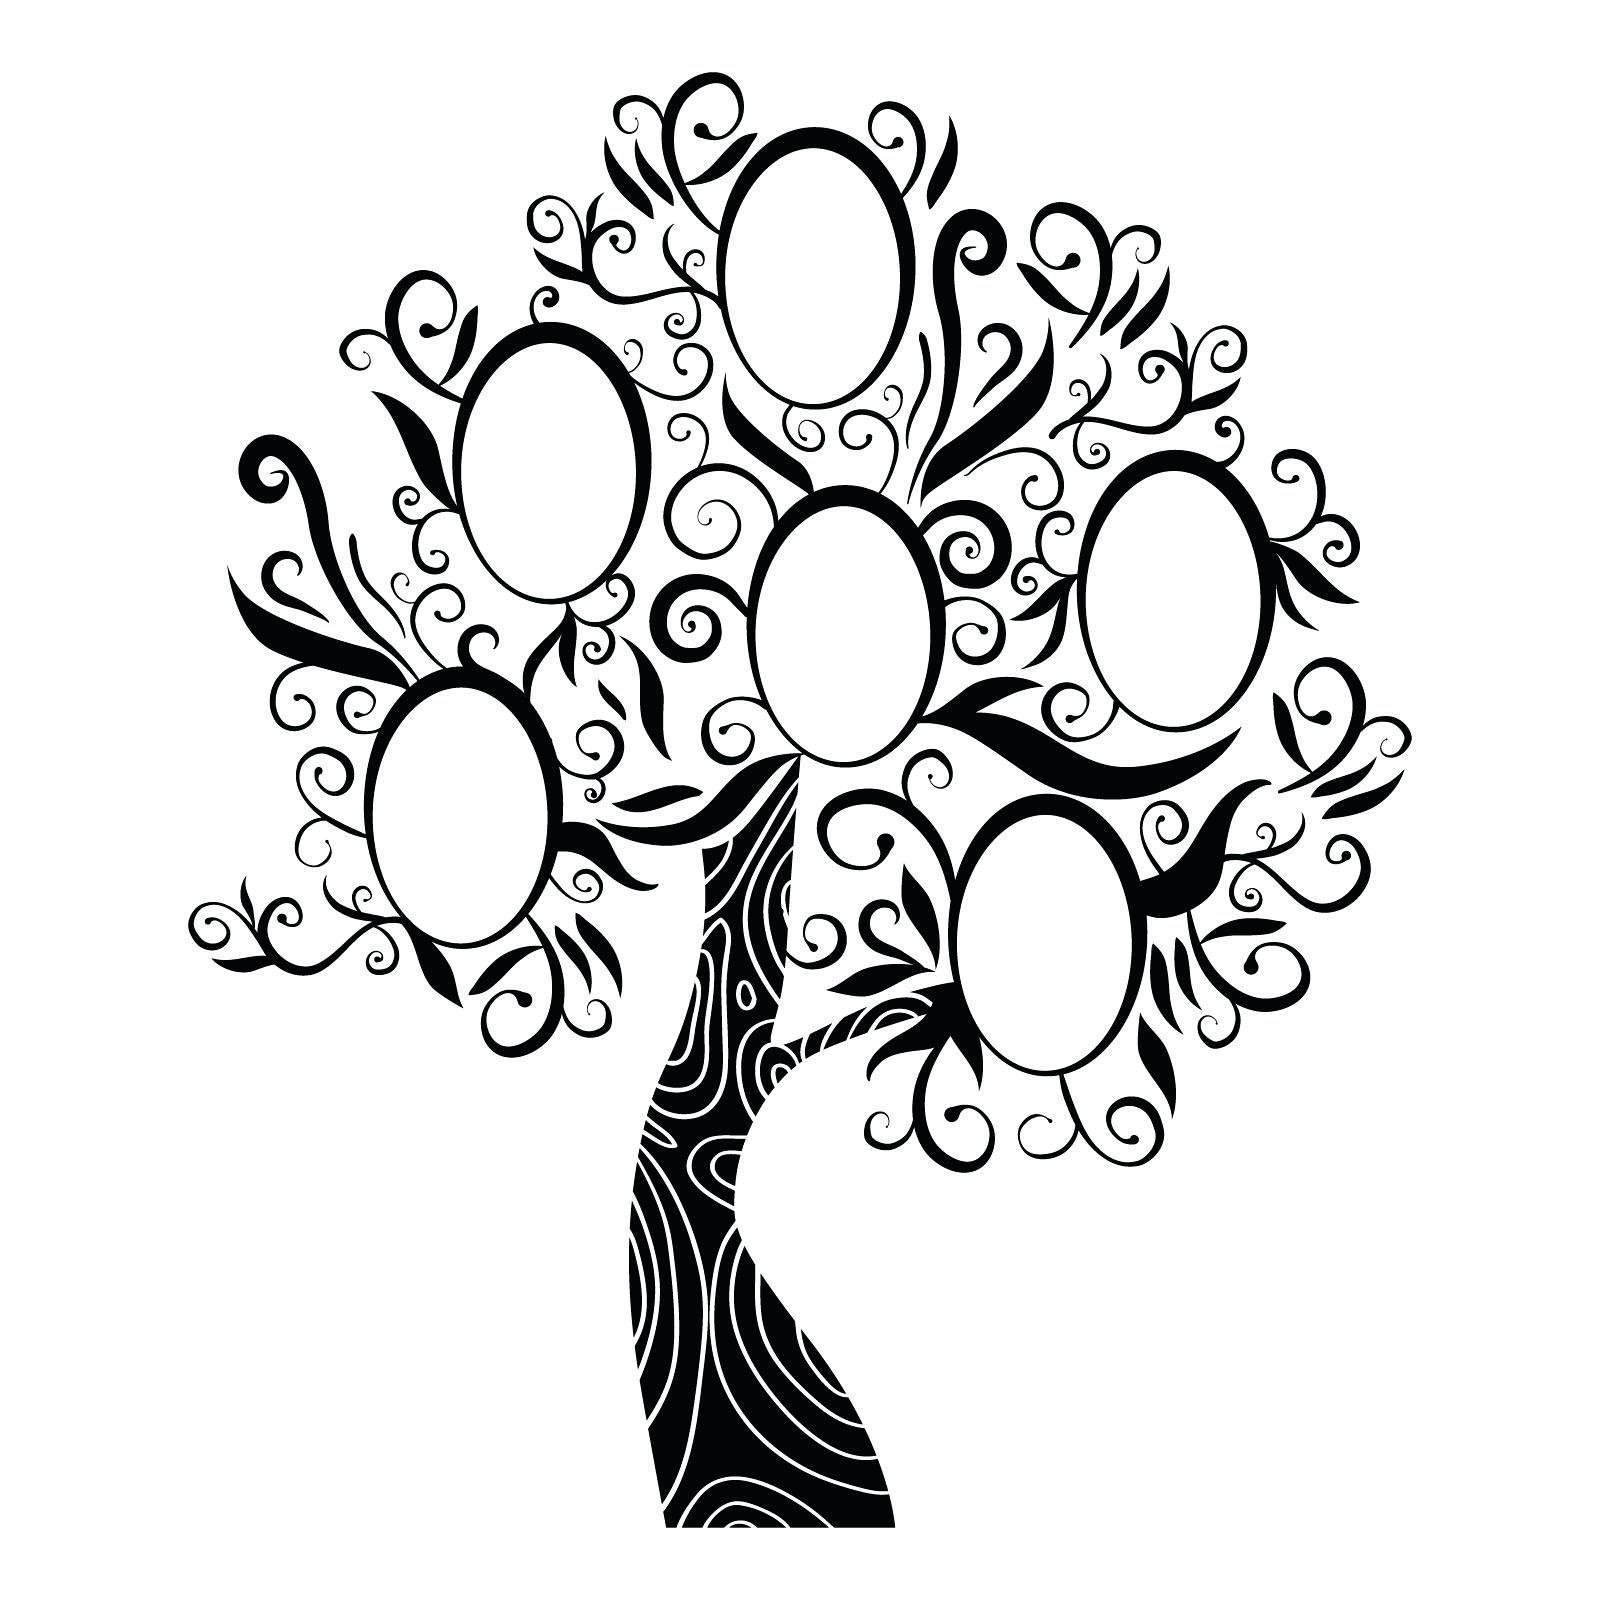 1600x1600 Wonderful Family Tree Clipart Sketch Template Fancy